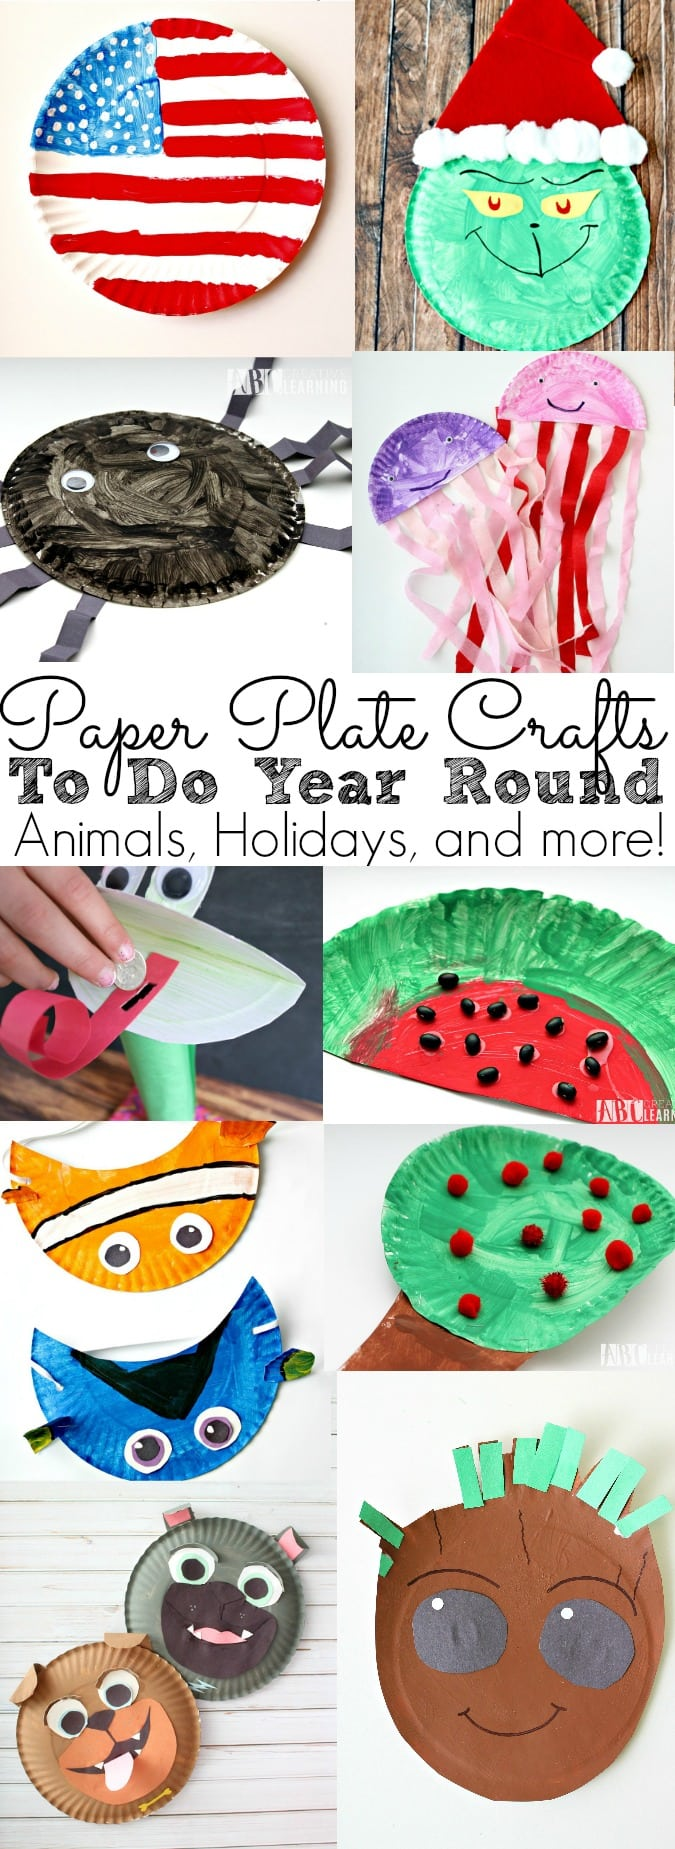 Looking to create some fun paper plate crafts? Check out my Paper Plate Crafts To Do Year Round List! Filled with Animals, holidays, seasons, Disney inspired movies and more! Perfect for decorating classrooms and fun at home! - simplytodaylife.com